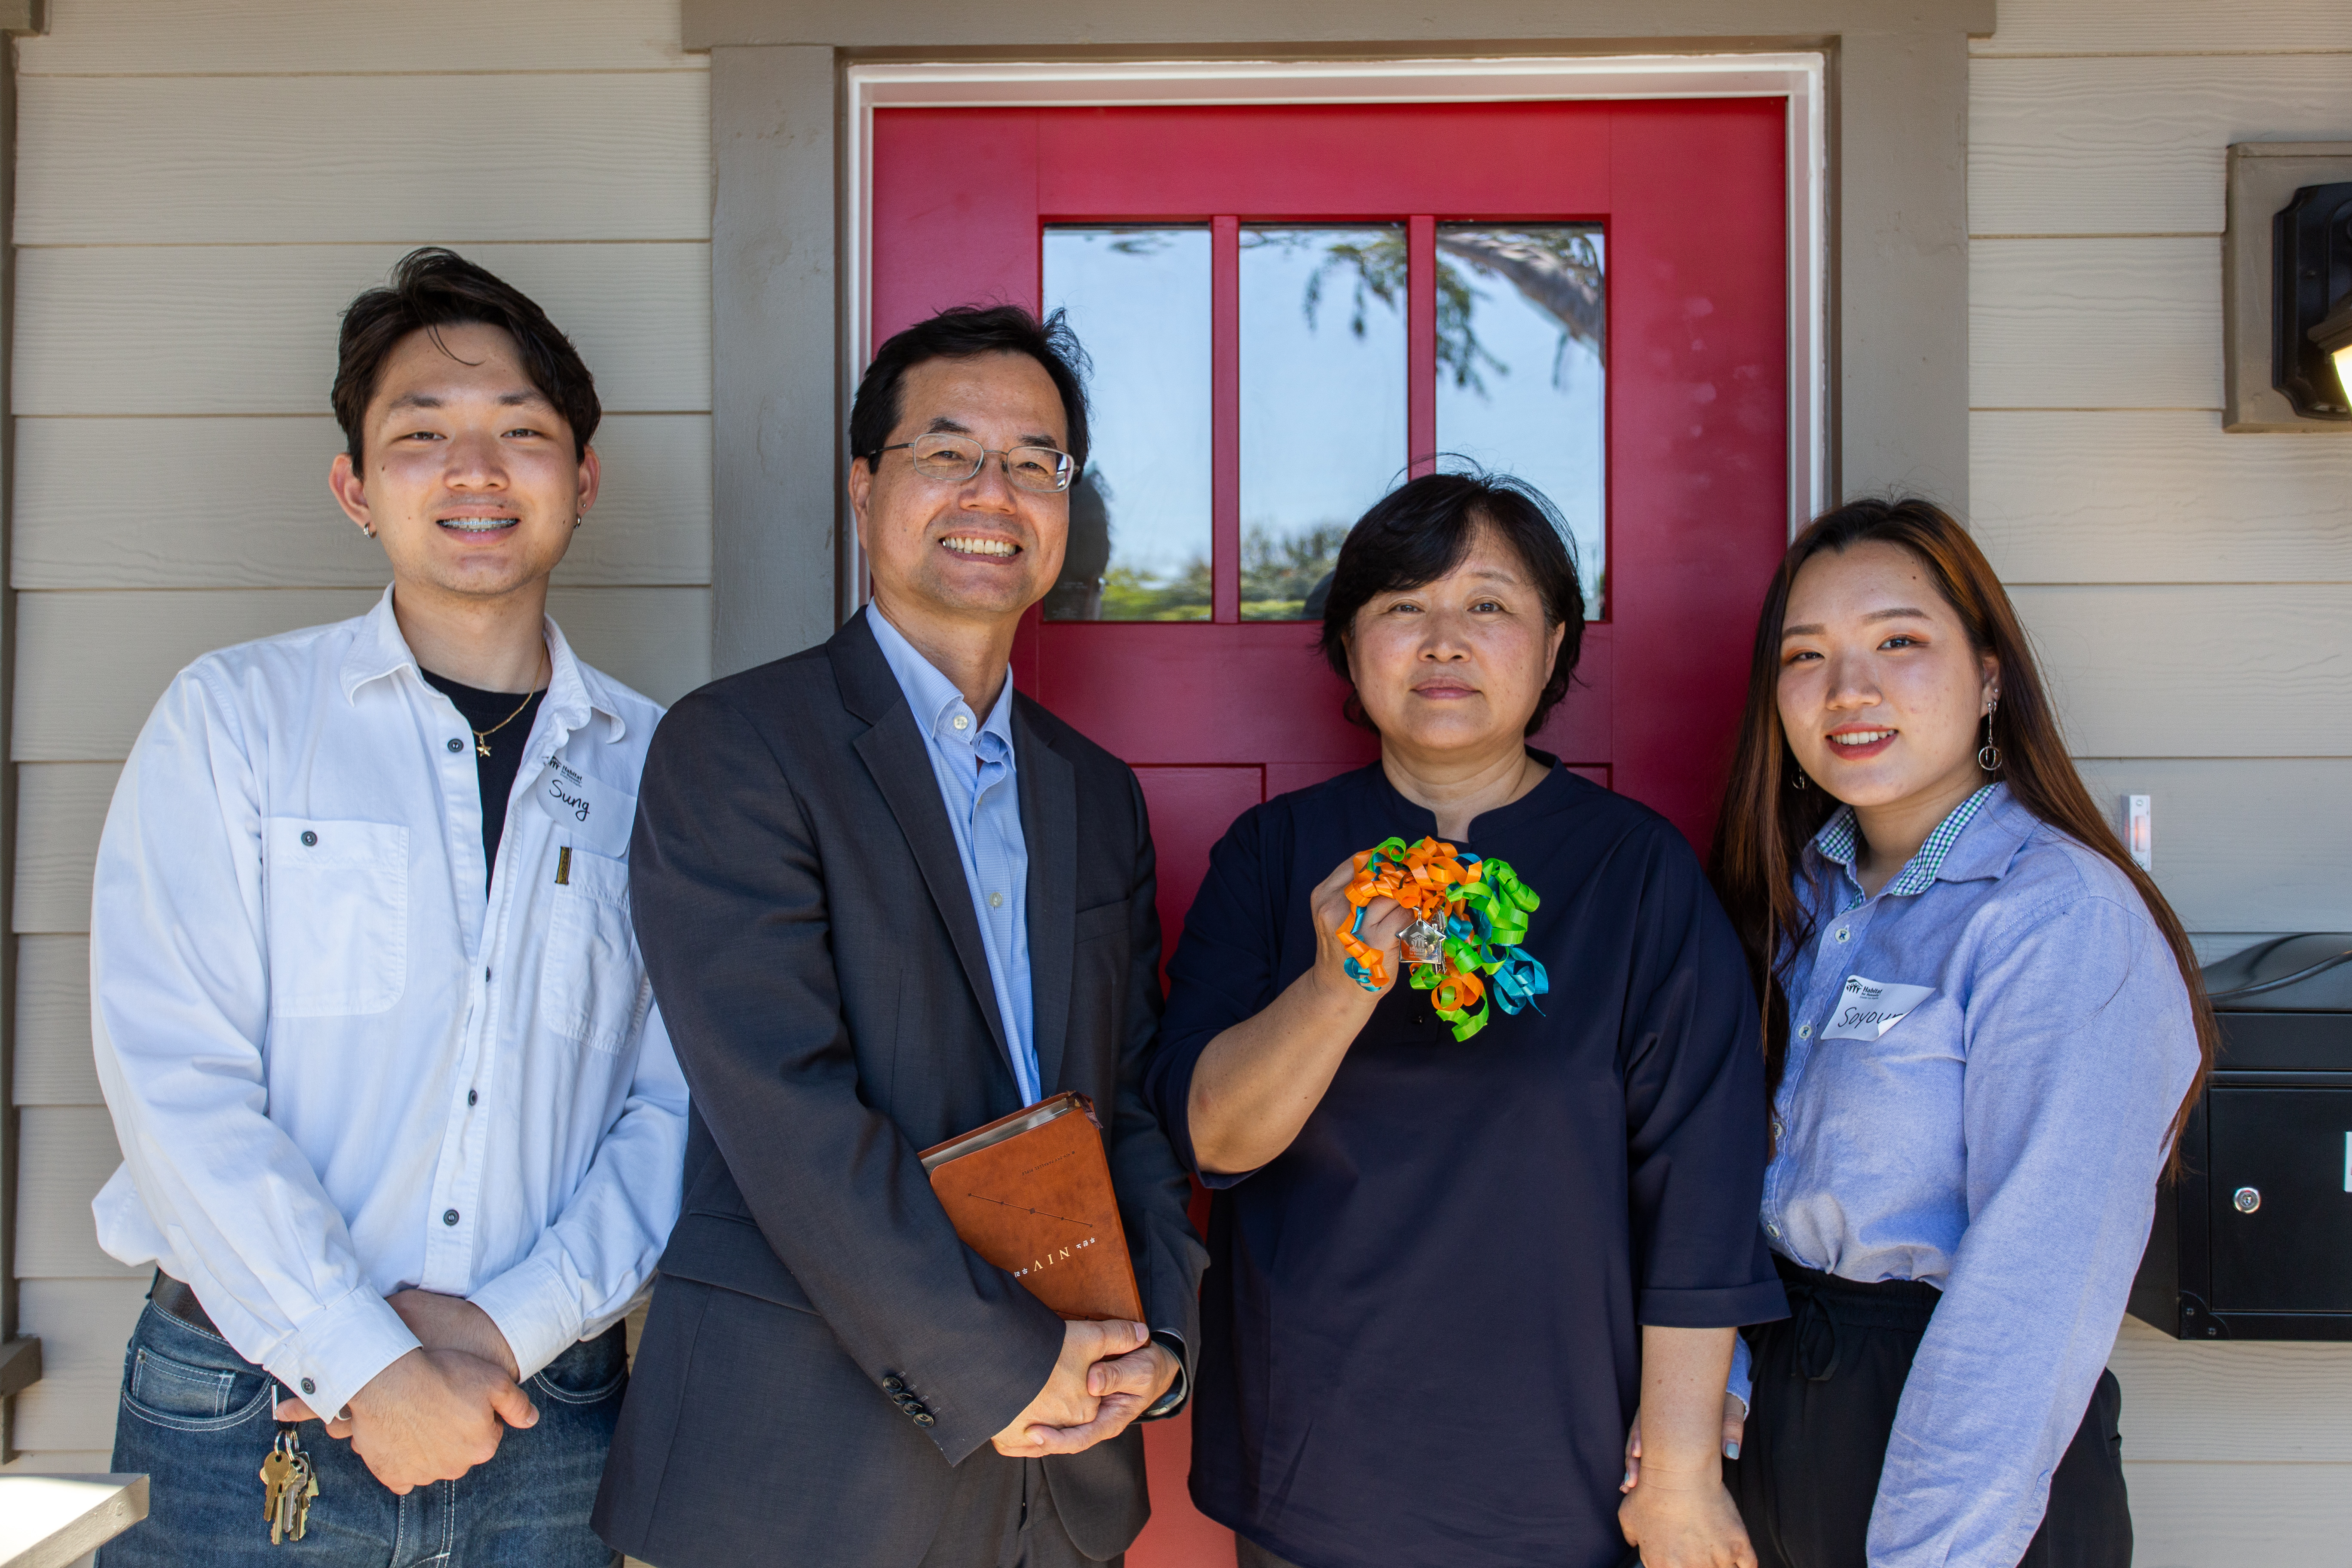 A family of four standing in front of a red door holding keys and smiling.